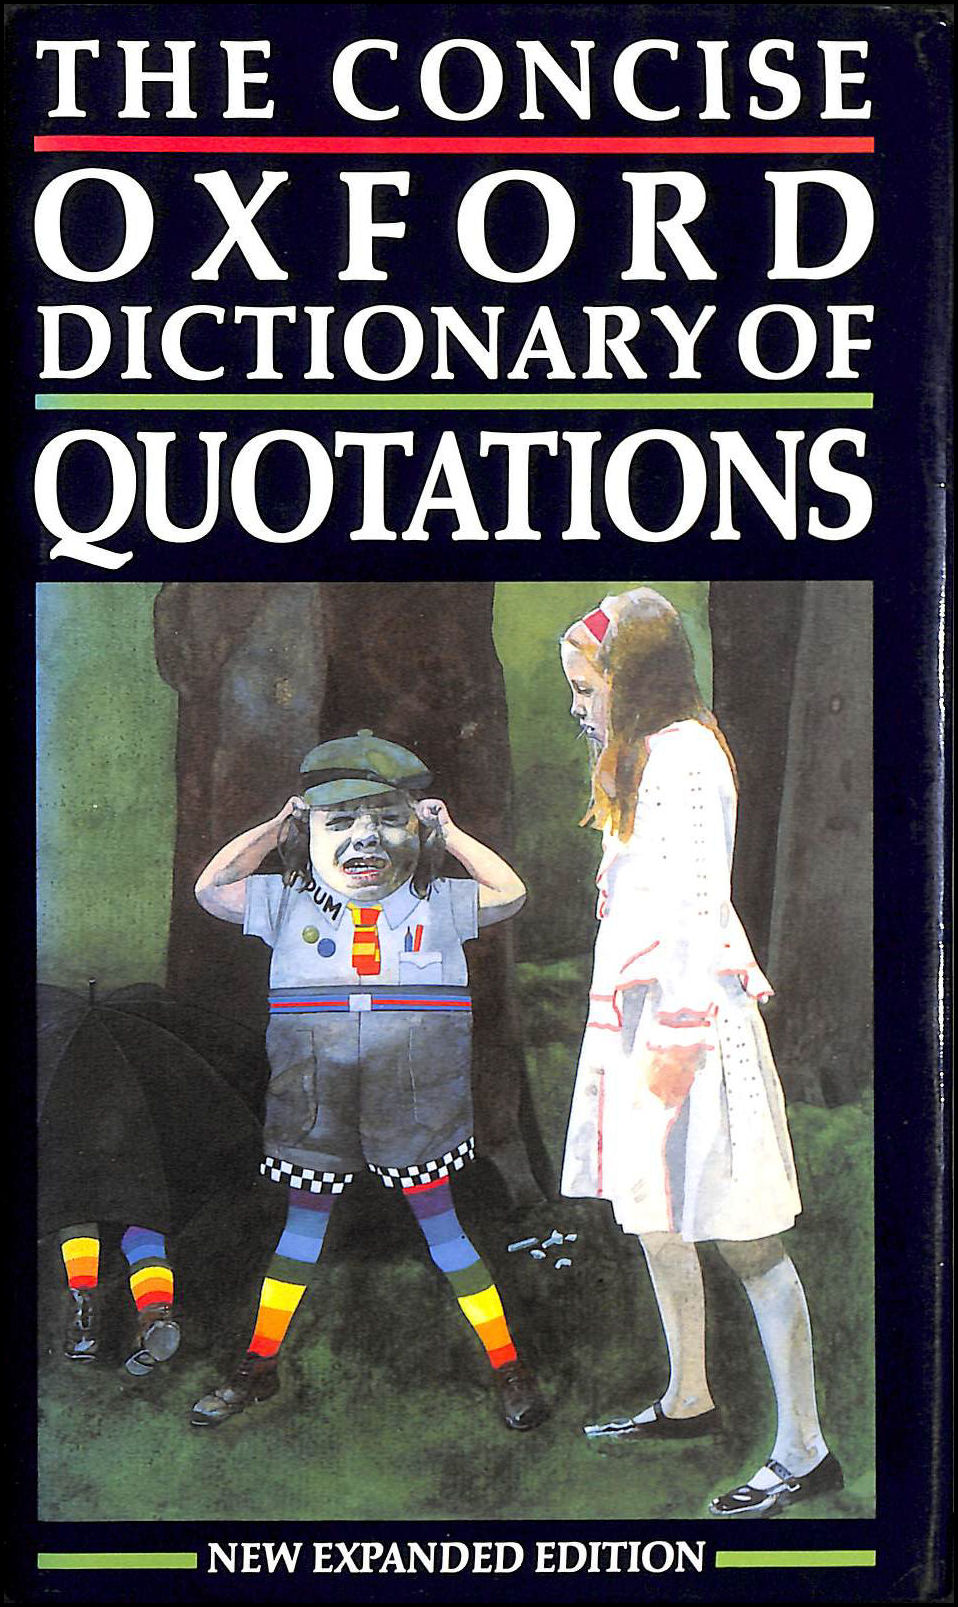 The Concise Dictionary of Quotations, Angela Partington